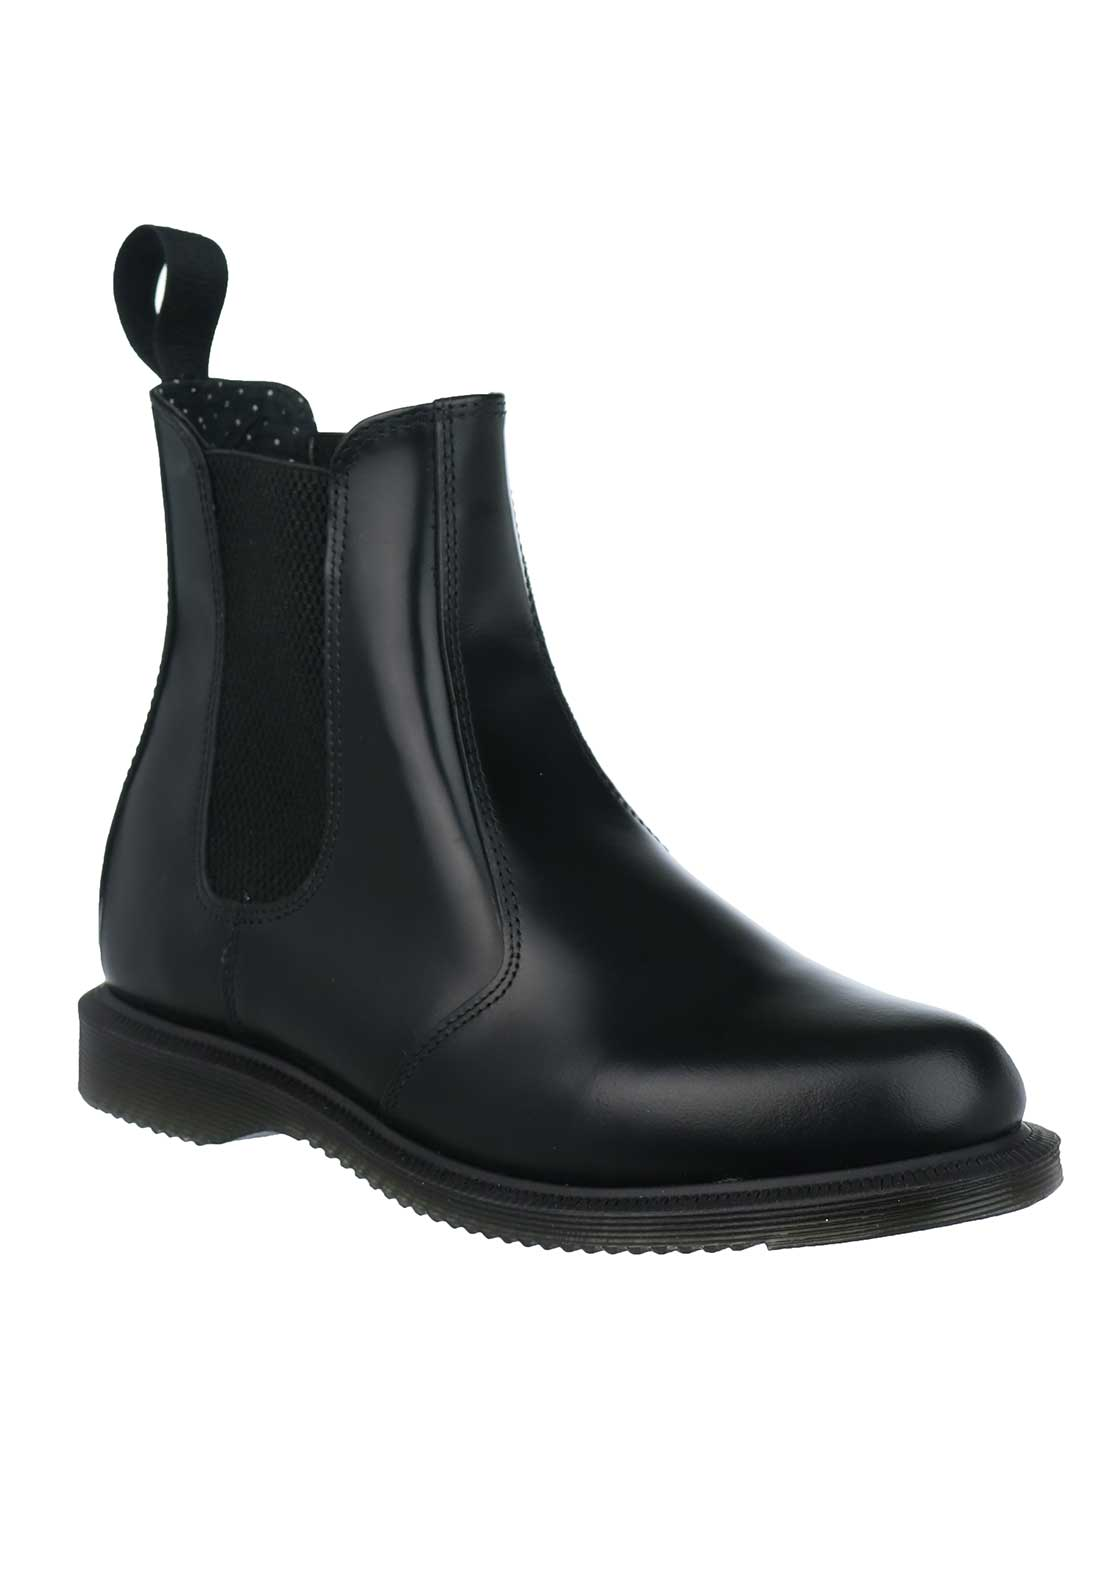 Dr. Martens Womens Flora Leather Boots, Black